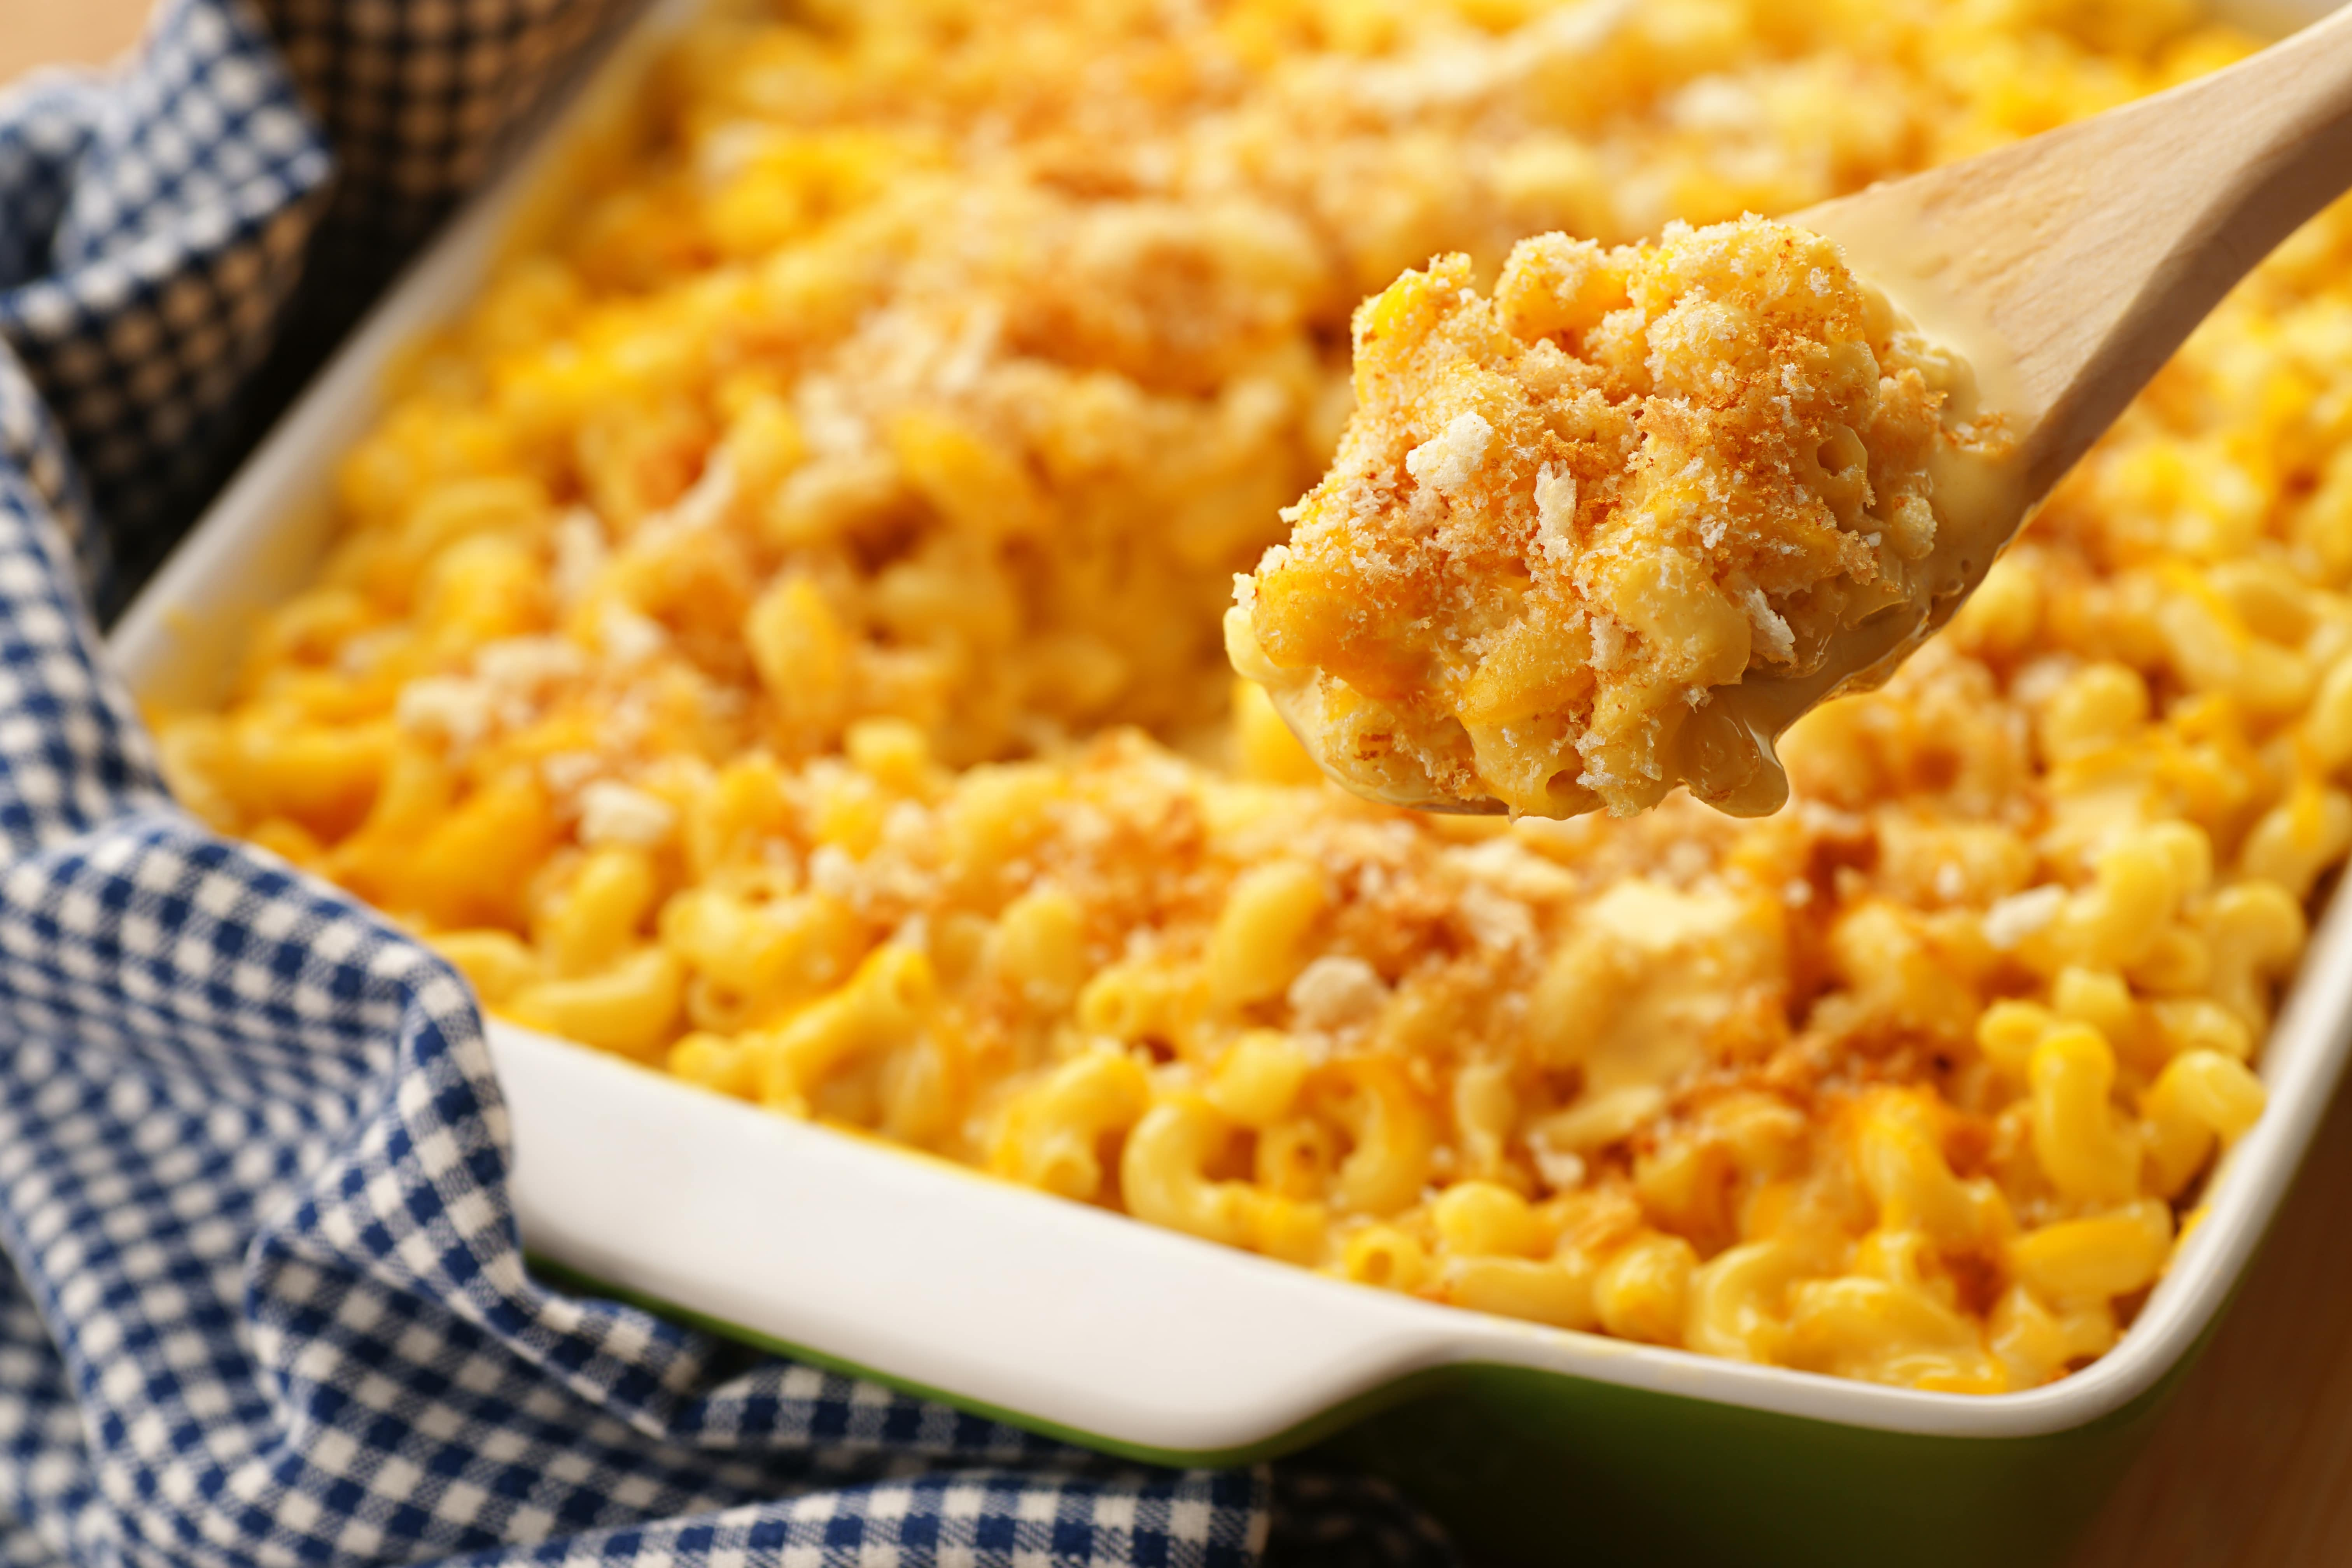 How Growing Up Poor Led Me To Hate Mac And Cheese